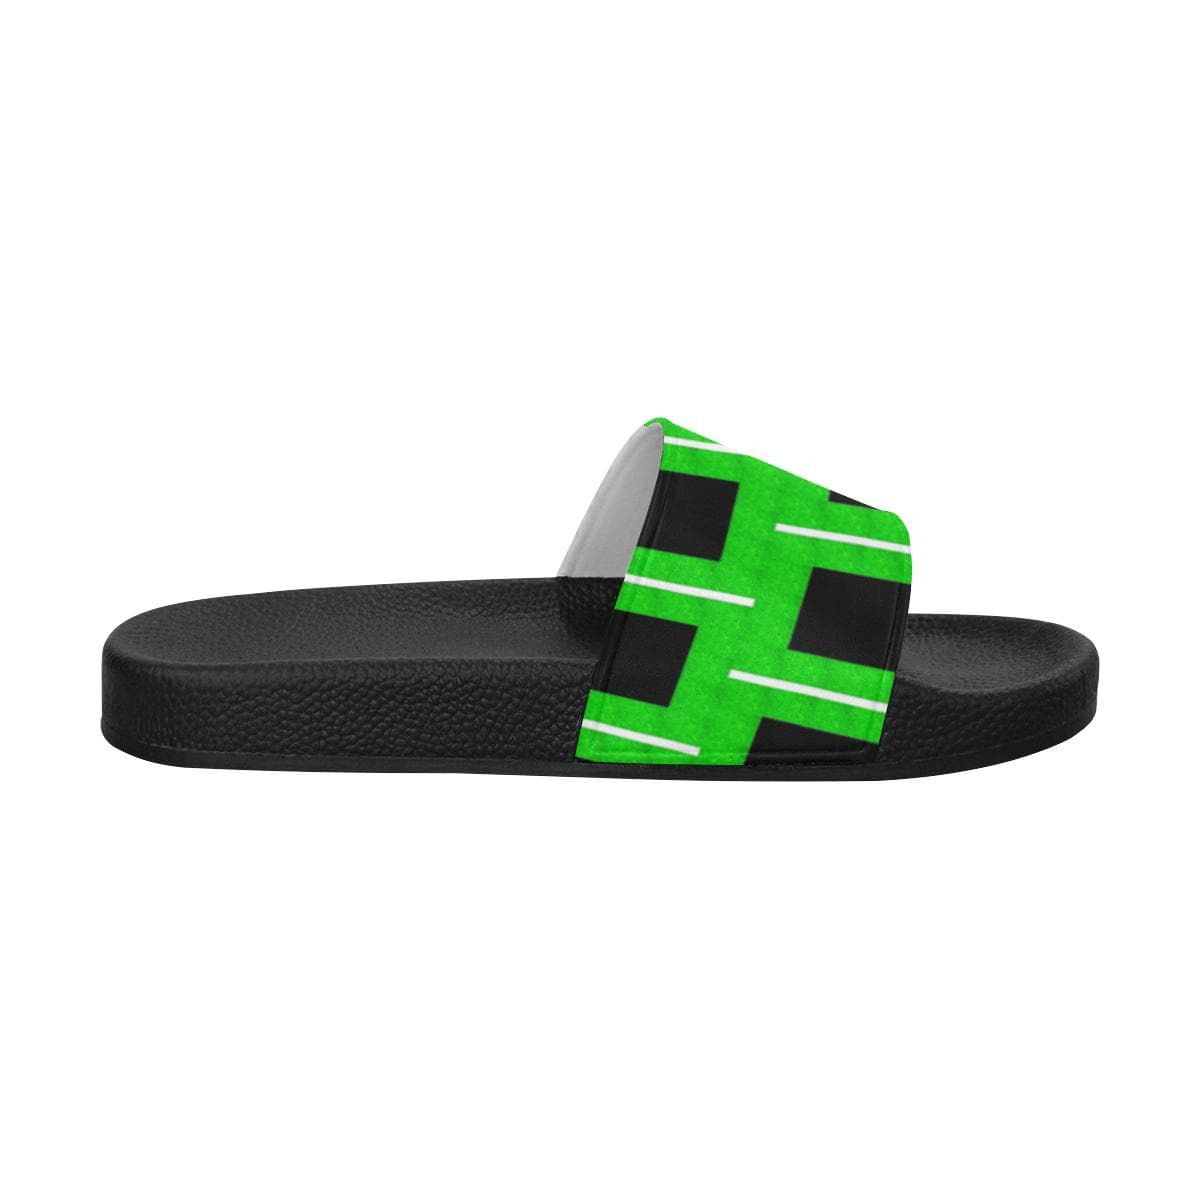 Royal Geo Men's Slide Sandals - Tie-Fly